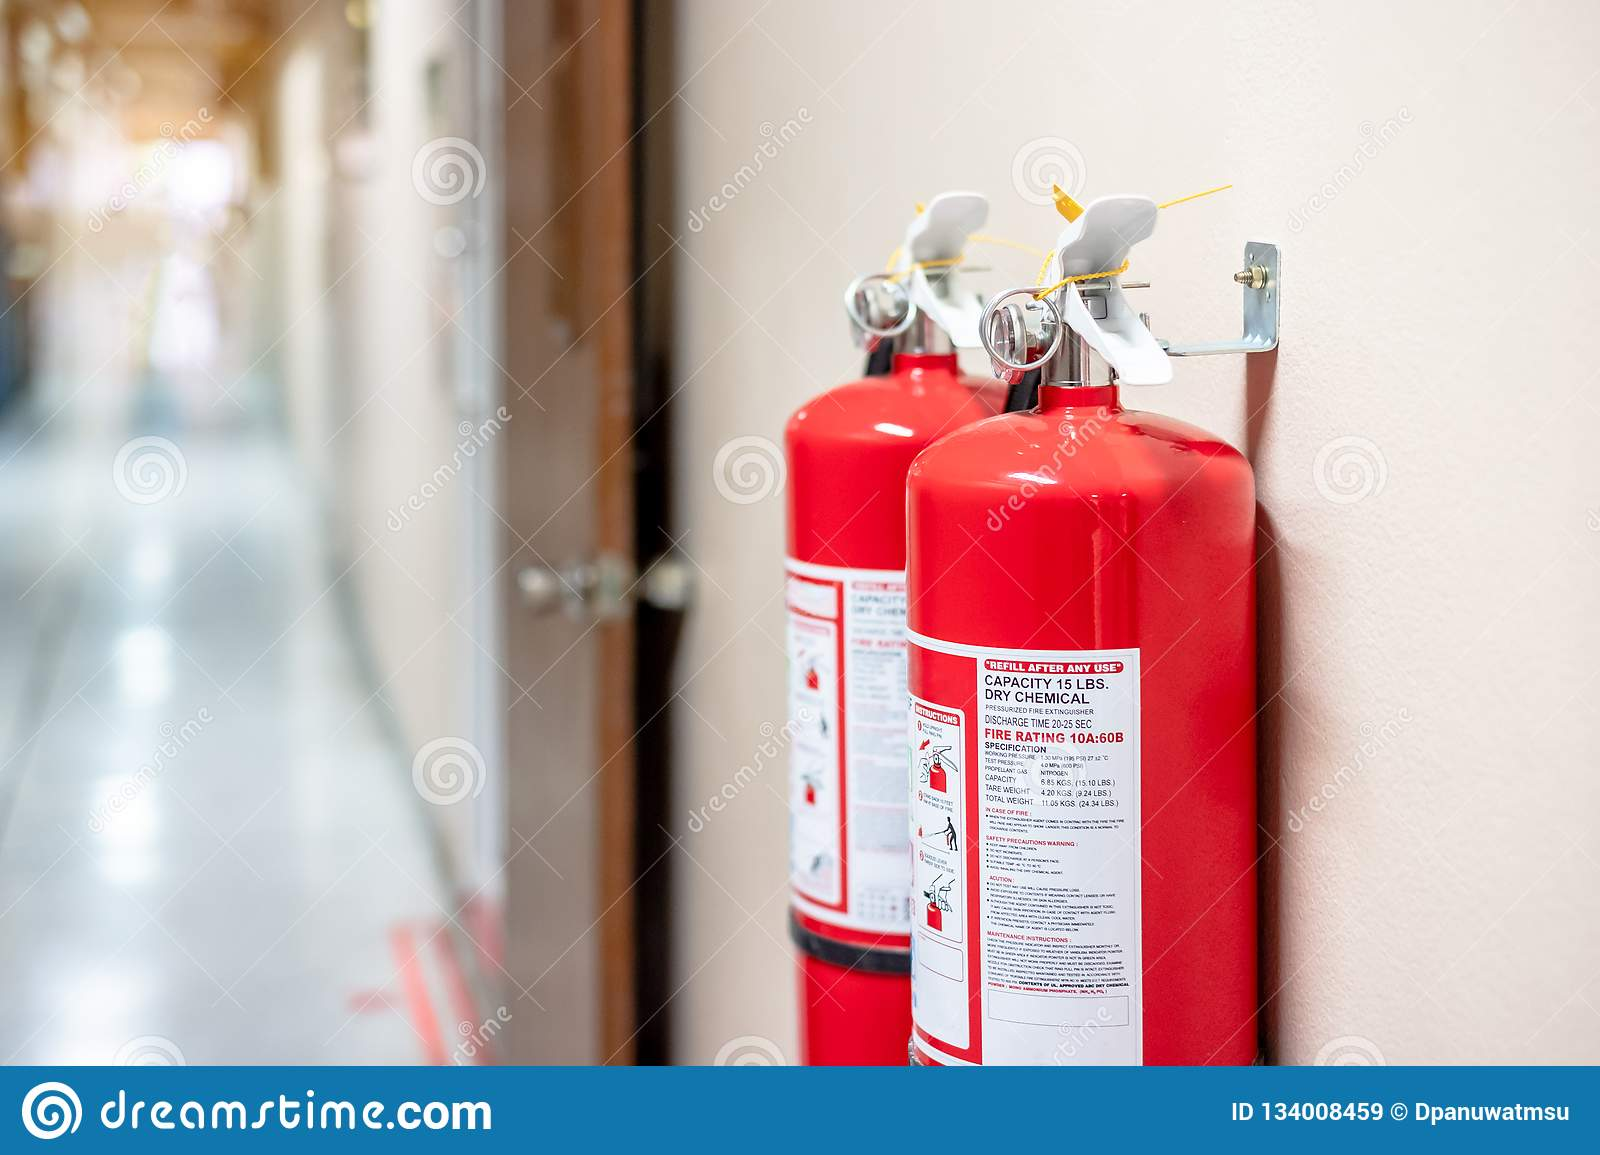 Fire extinguisher system on the wall background, powerful emergency equipment